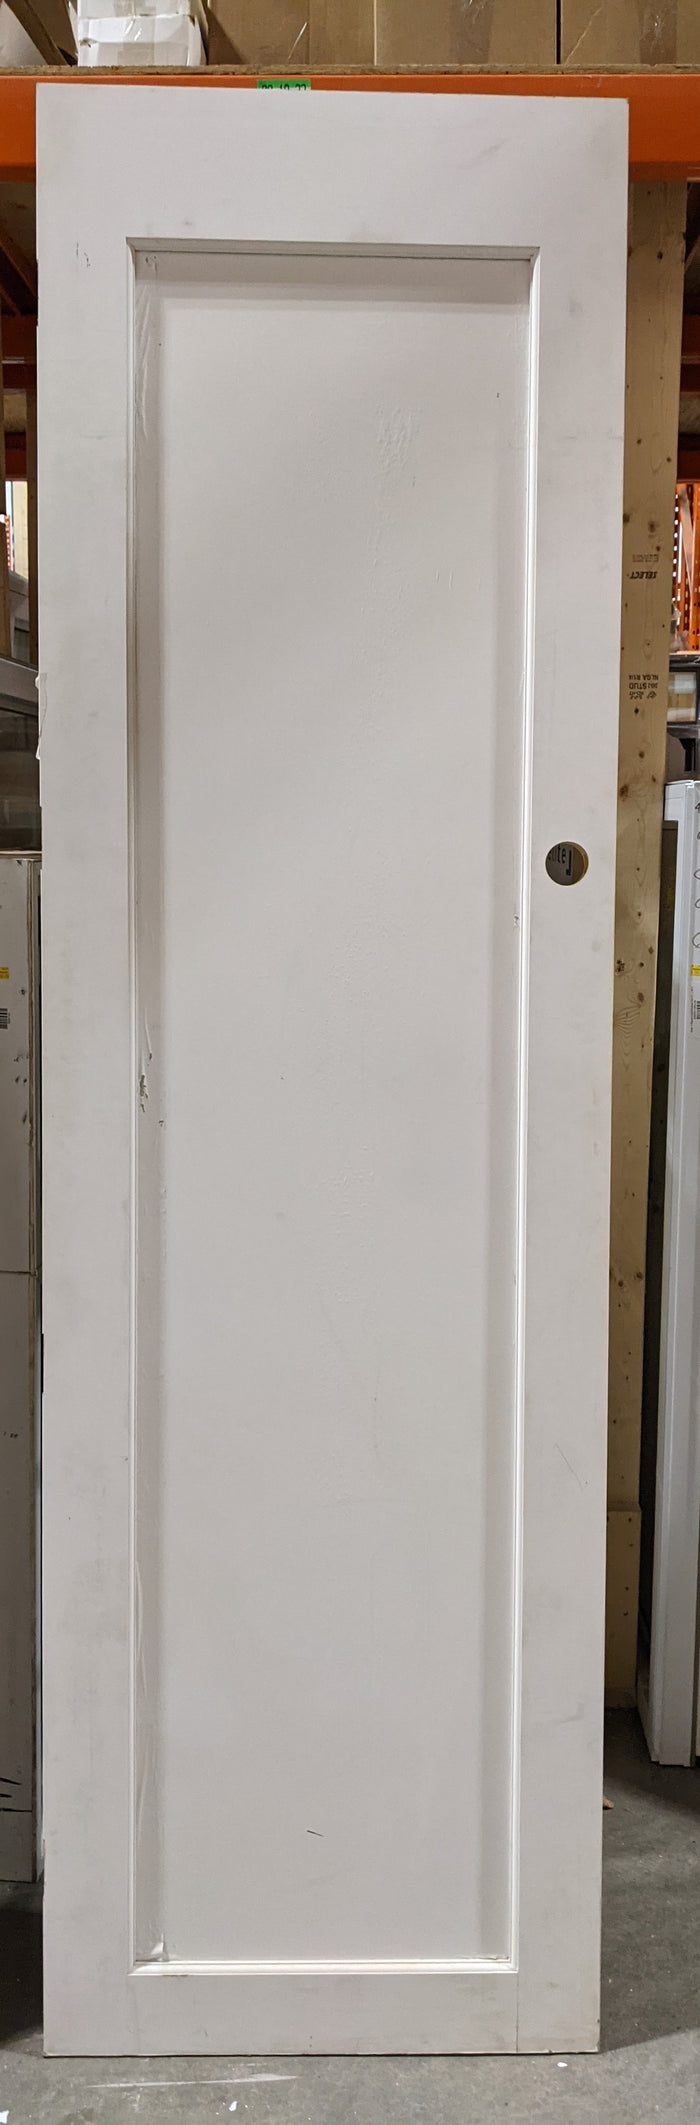 Single Pane French Doors with Knob Cutout